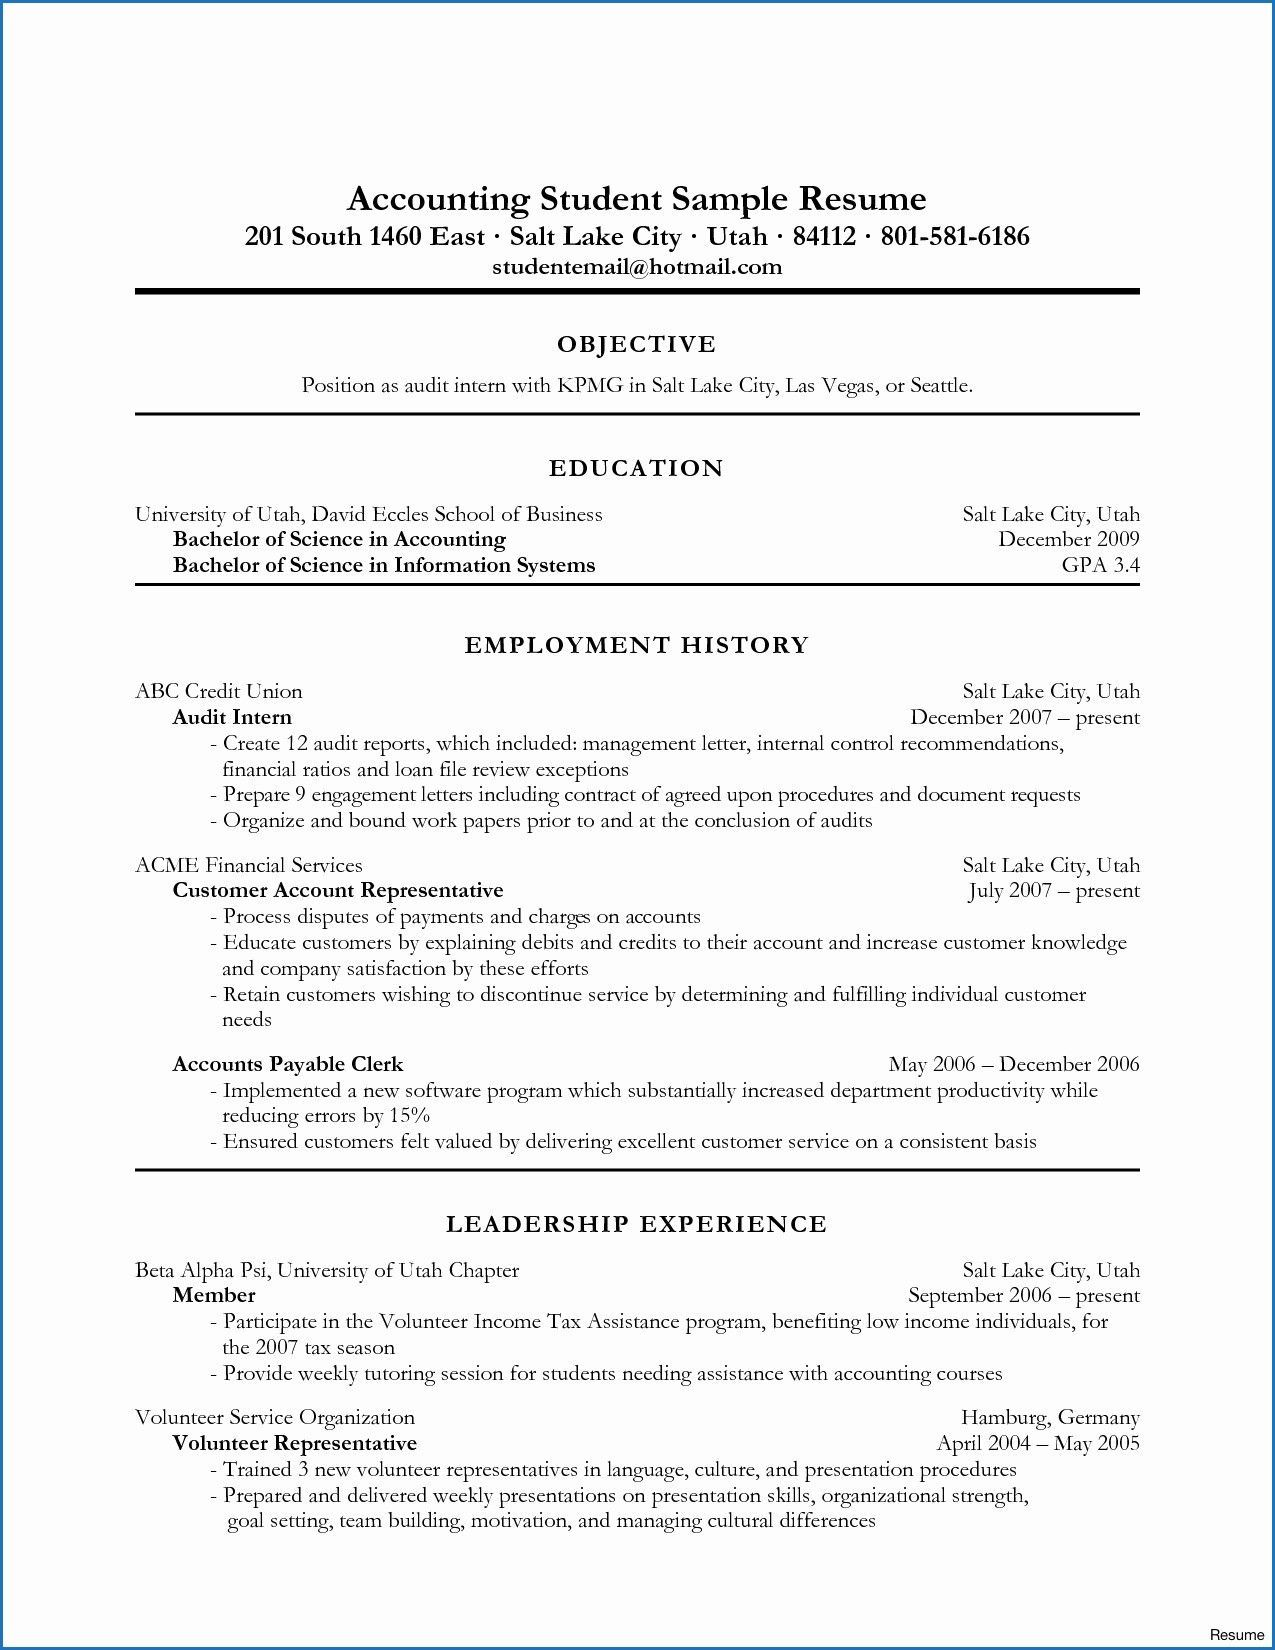 to write resume objective for internship is ojt objectives accounting students seo sample Resume Ojt Resume Objectives For Accounting Students